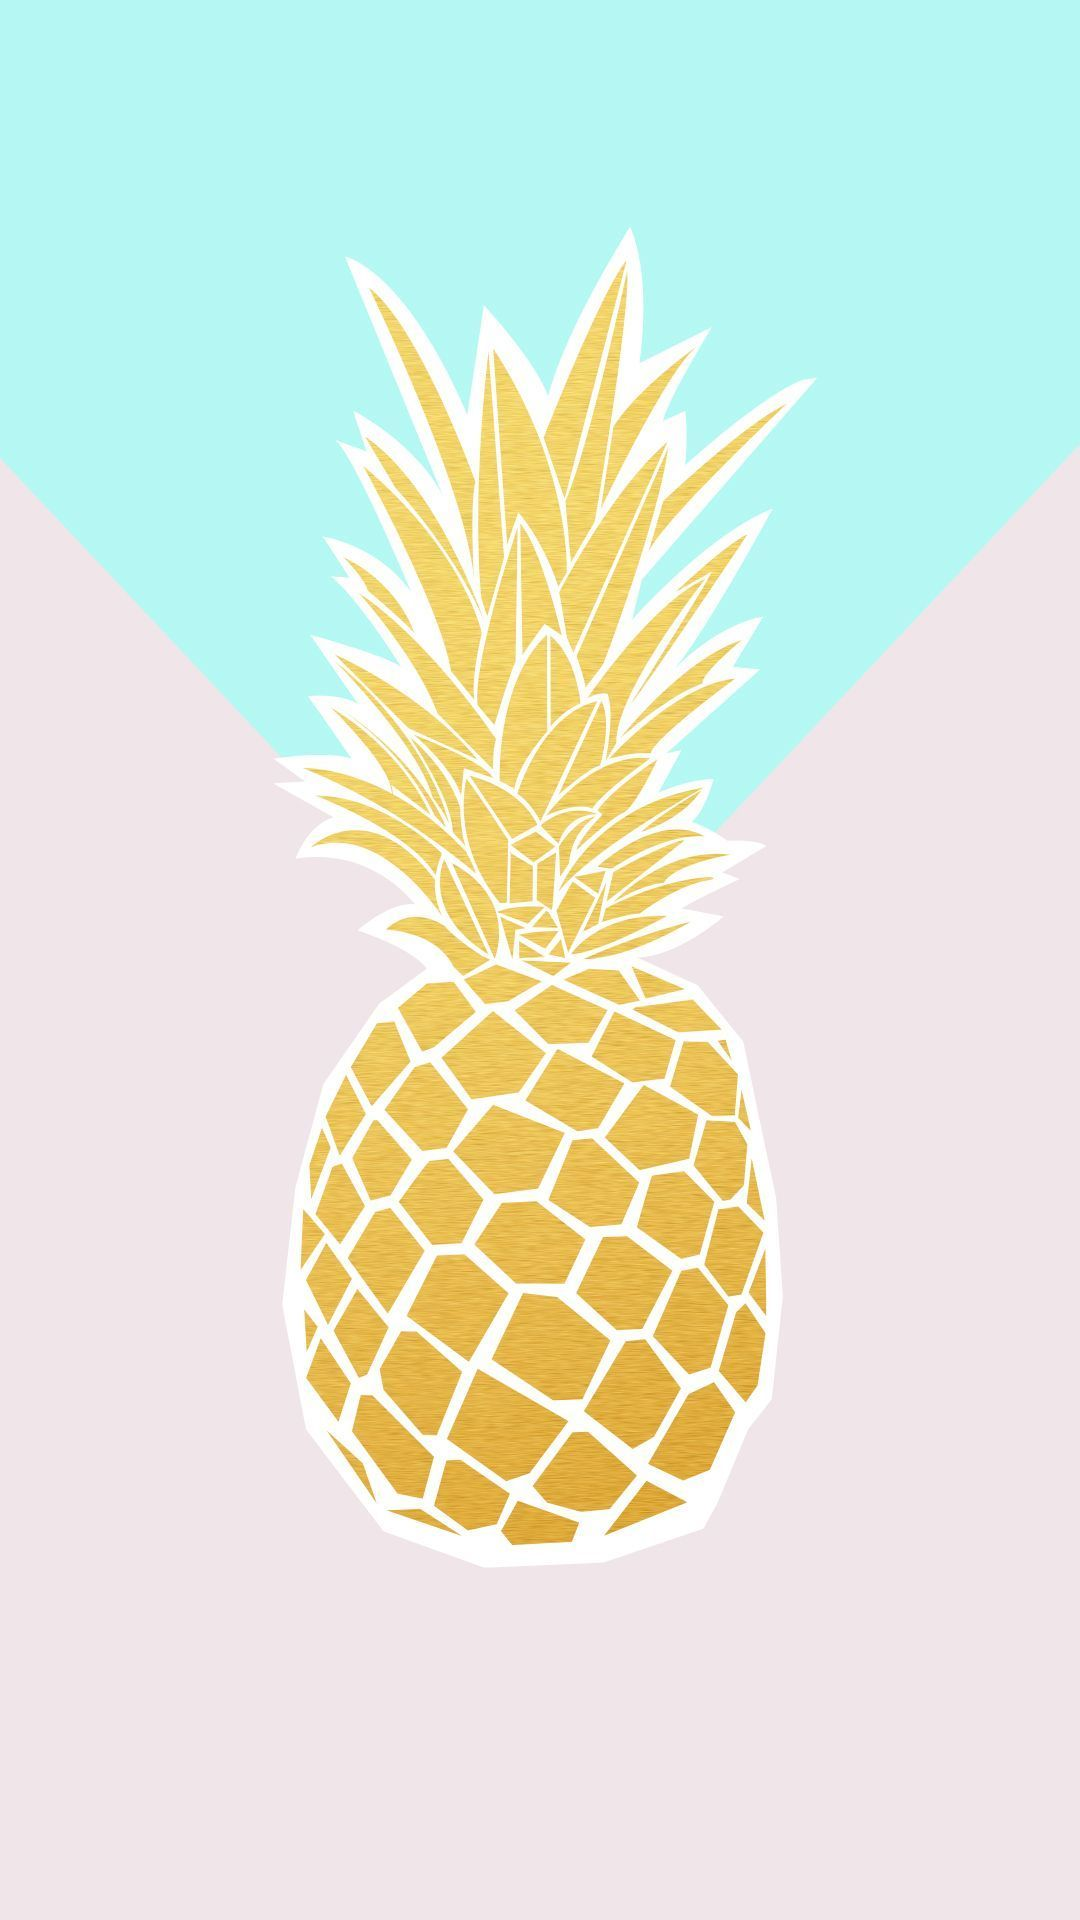 Rose Gold Cute Pineapple Phone Wallpaper rose gold cute